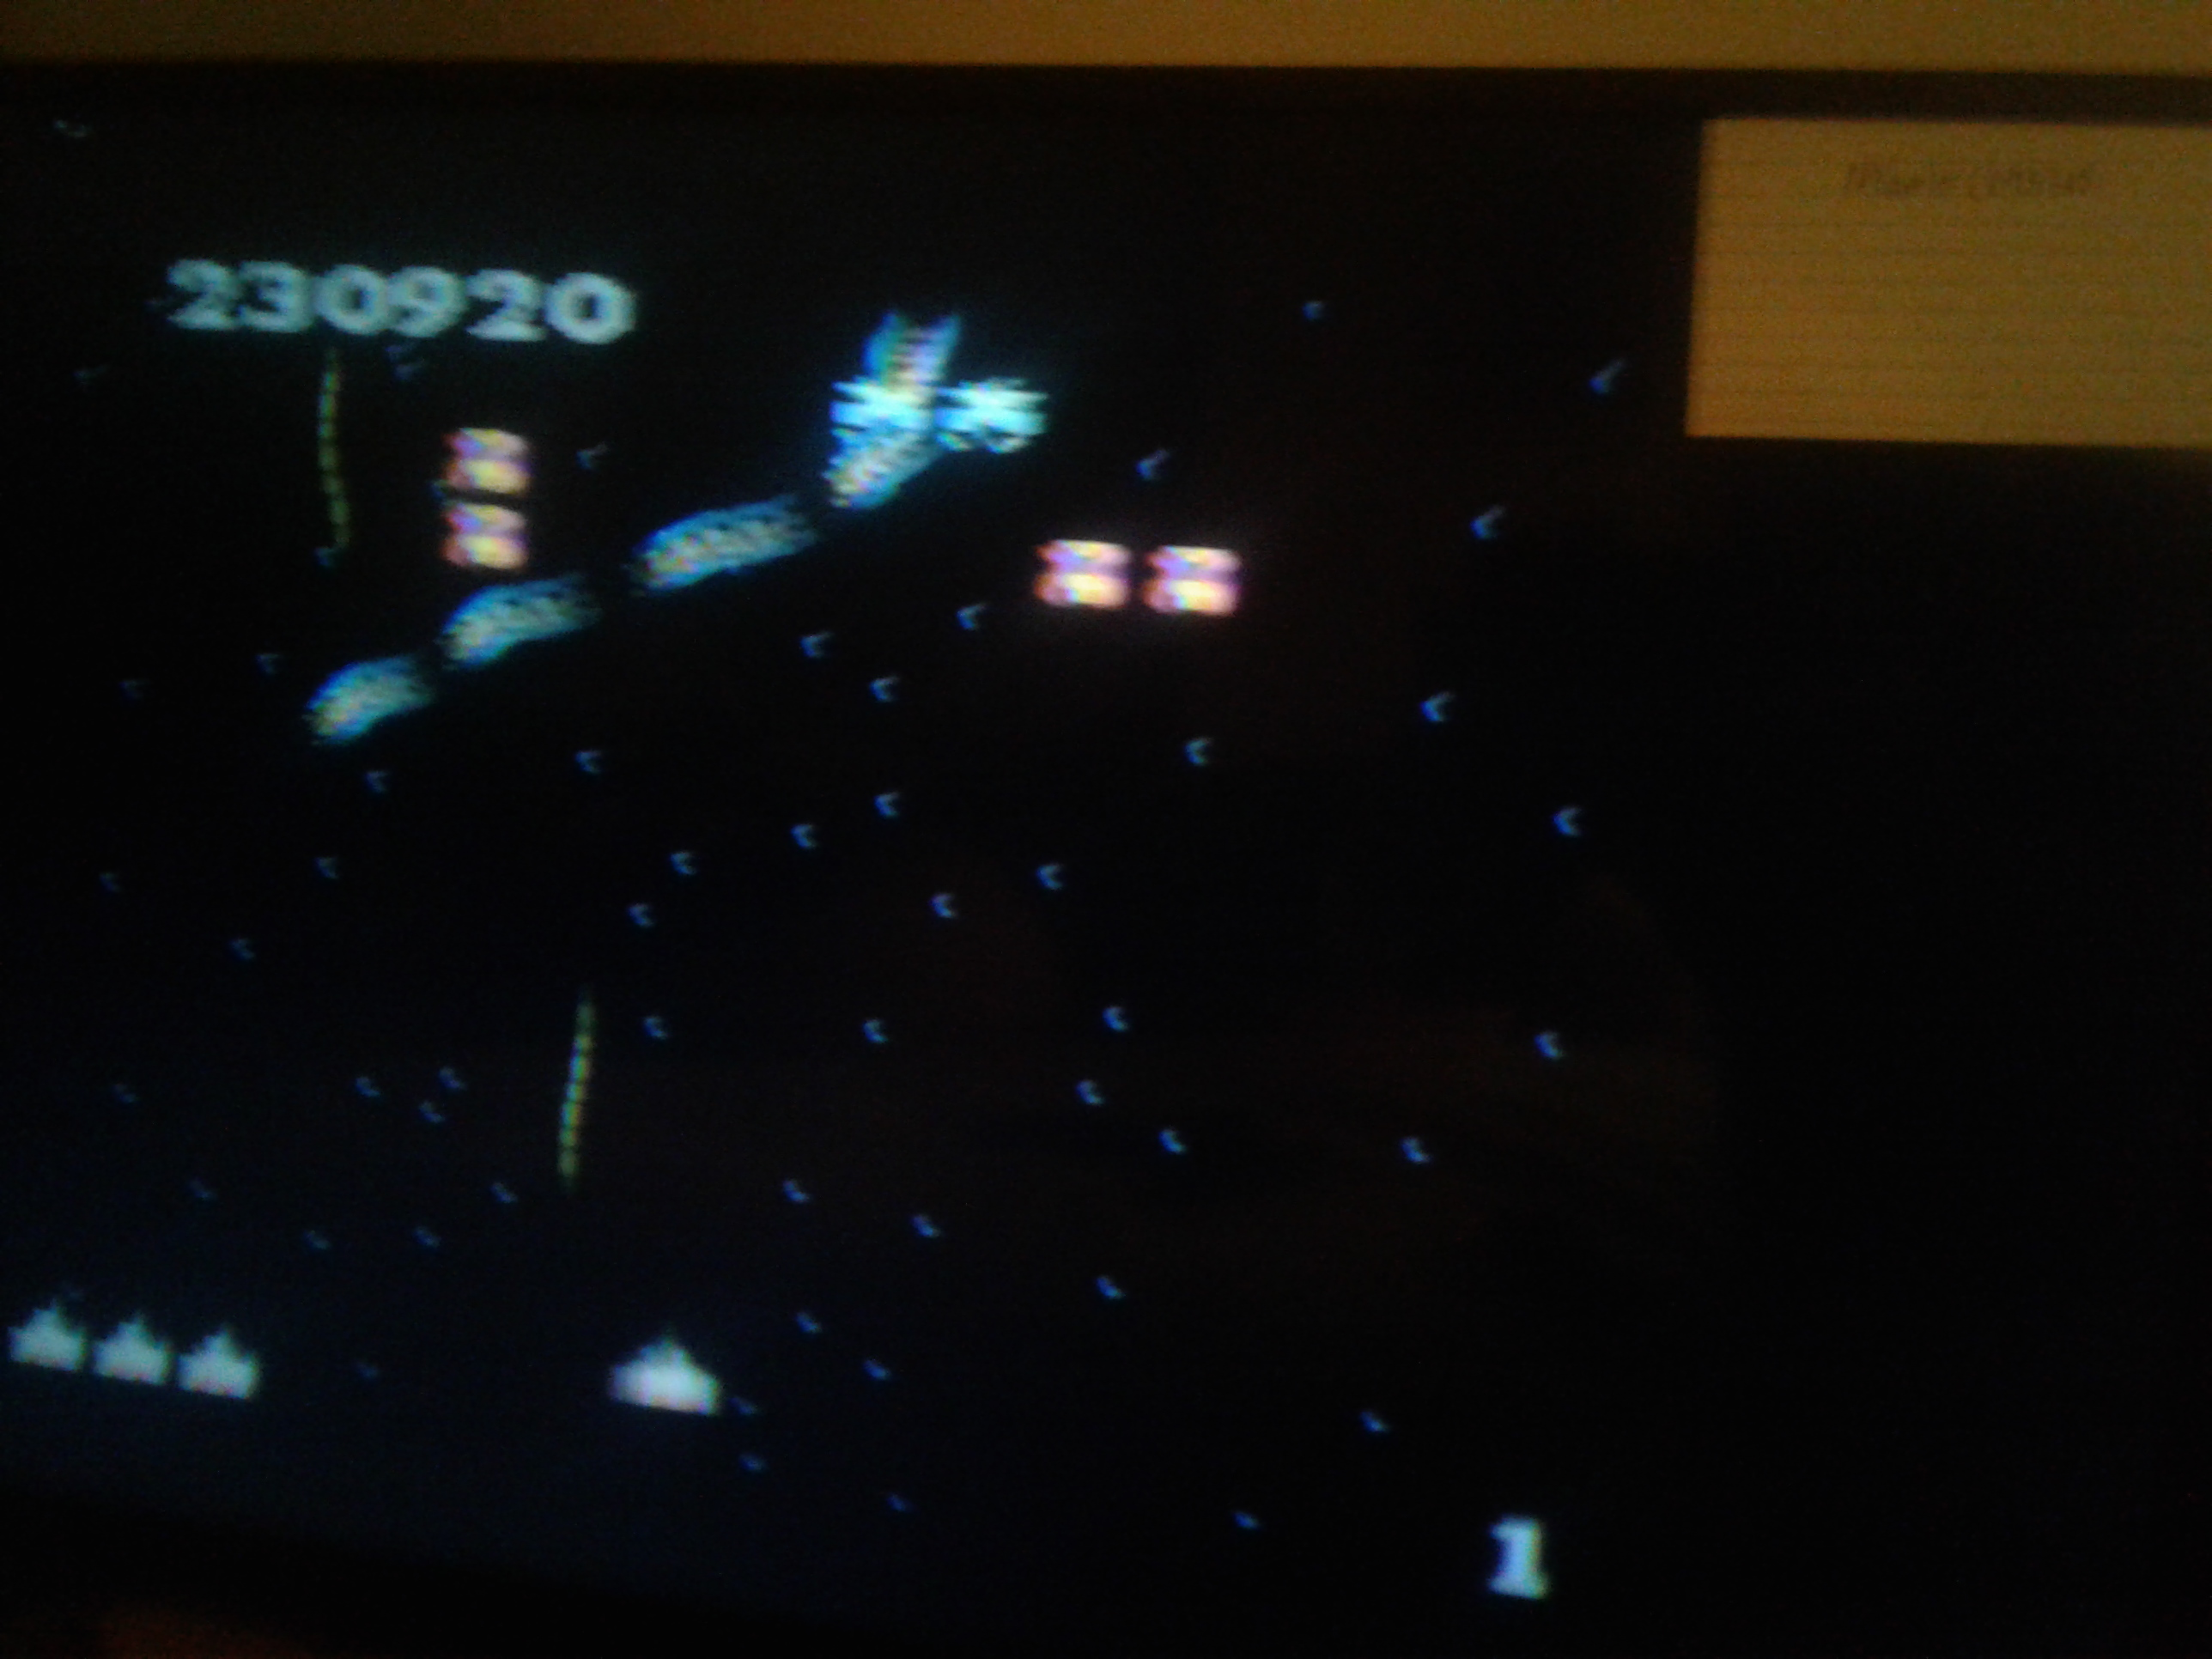 Mark: Galaga: Novice (Atari 7800) 230,920 points on 2019-02-02 22:00:42